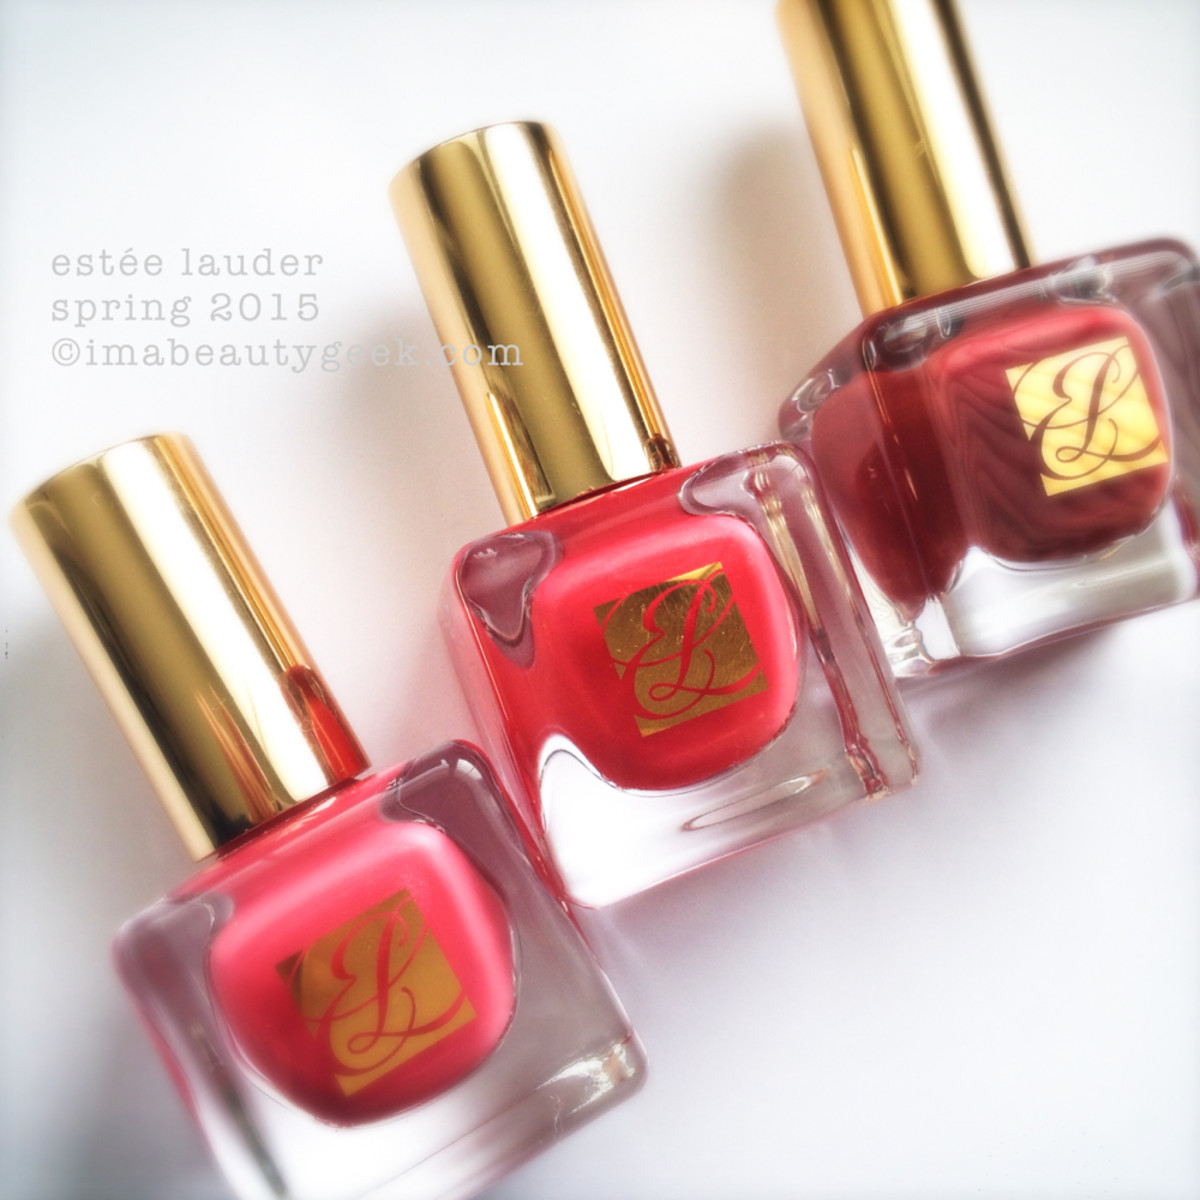 ESTEE LAUDER SPRING 2015: PURE COLOR NAIL SHADES - Beautygeeks